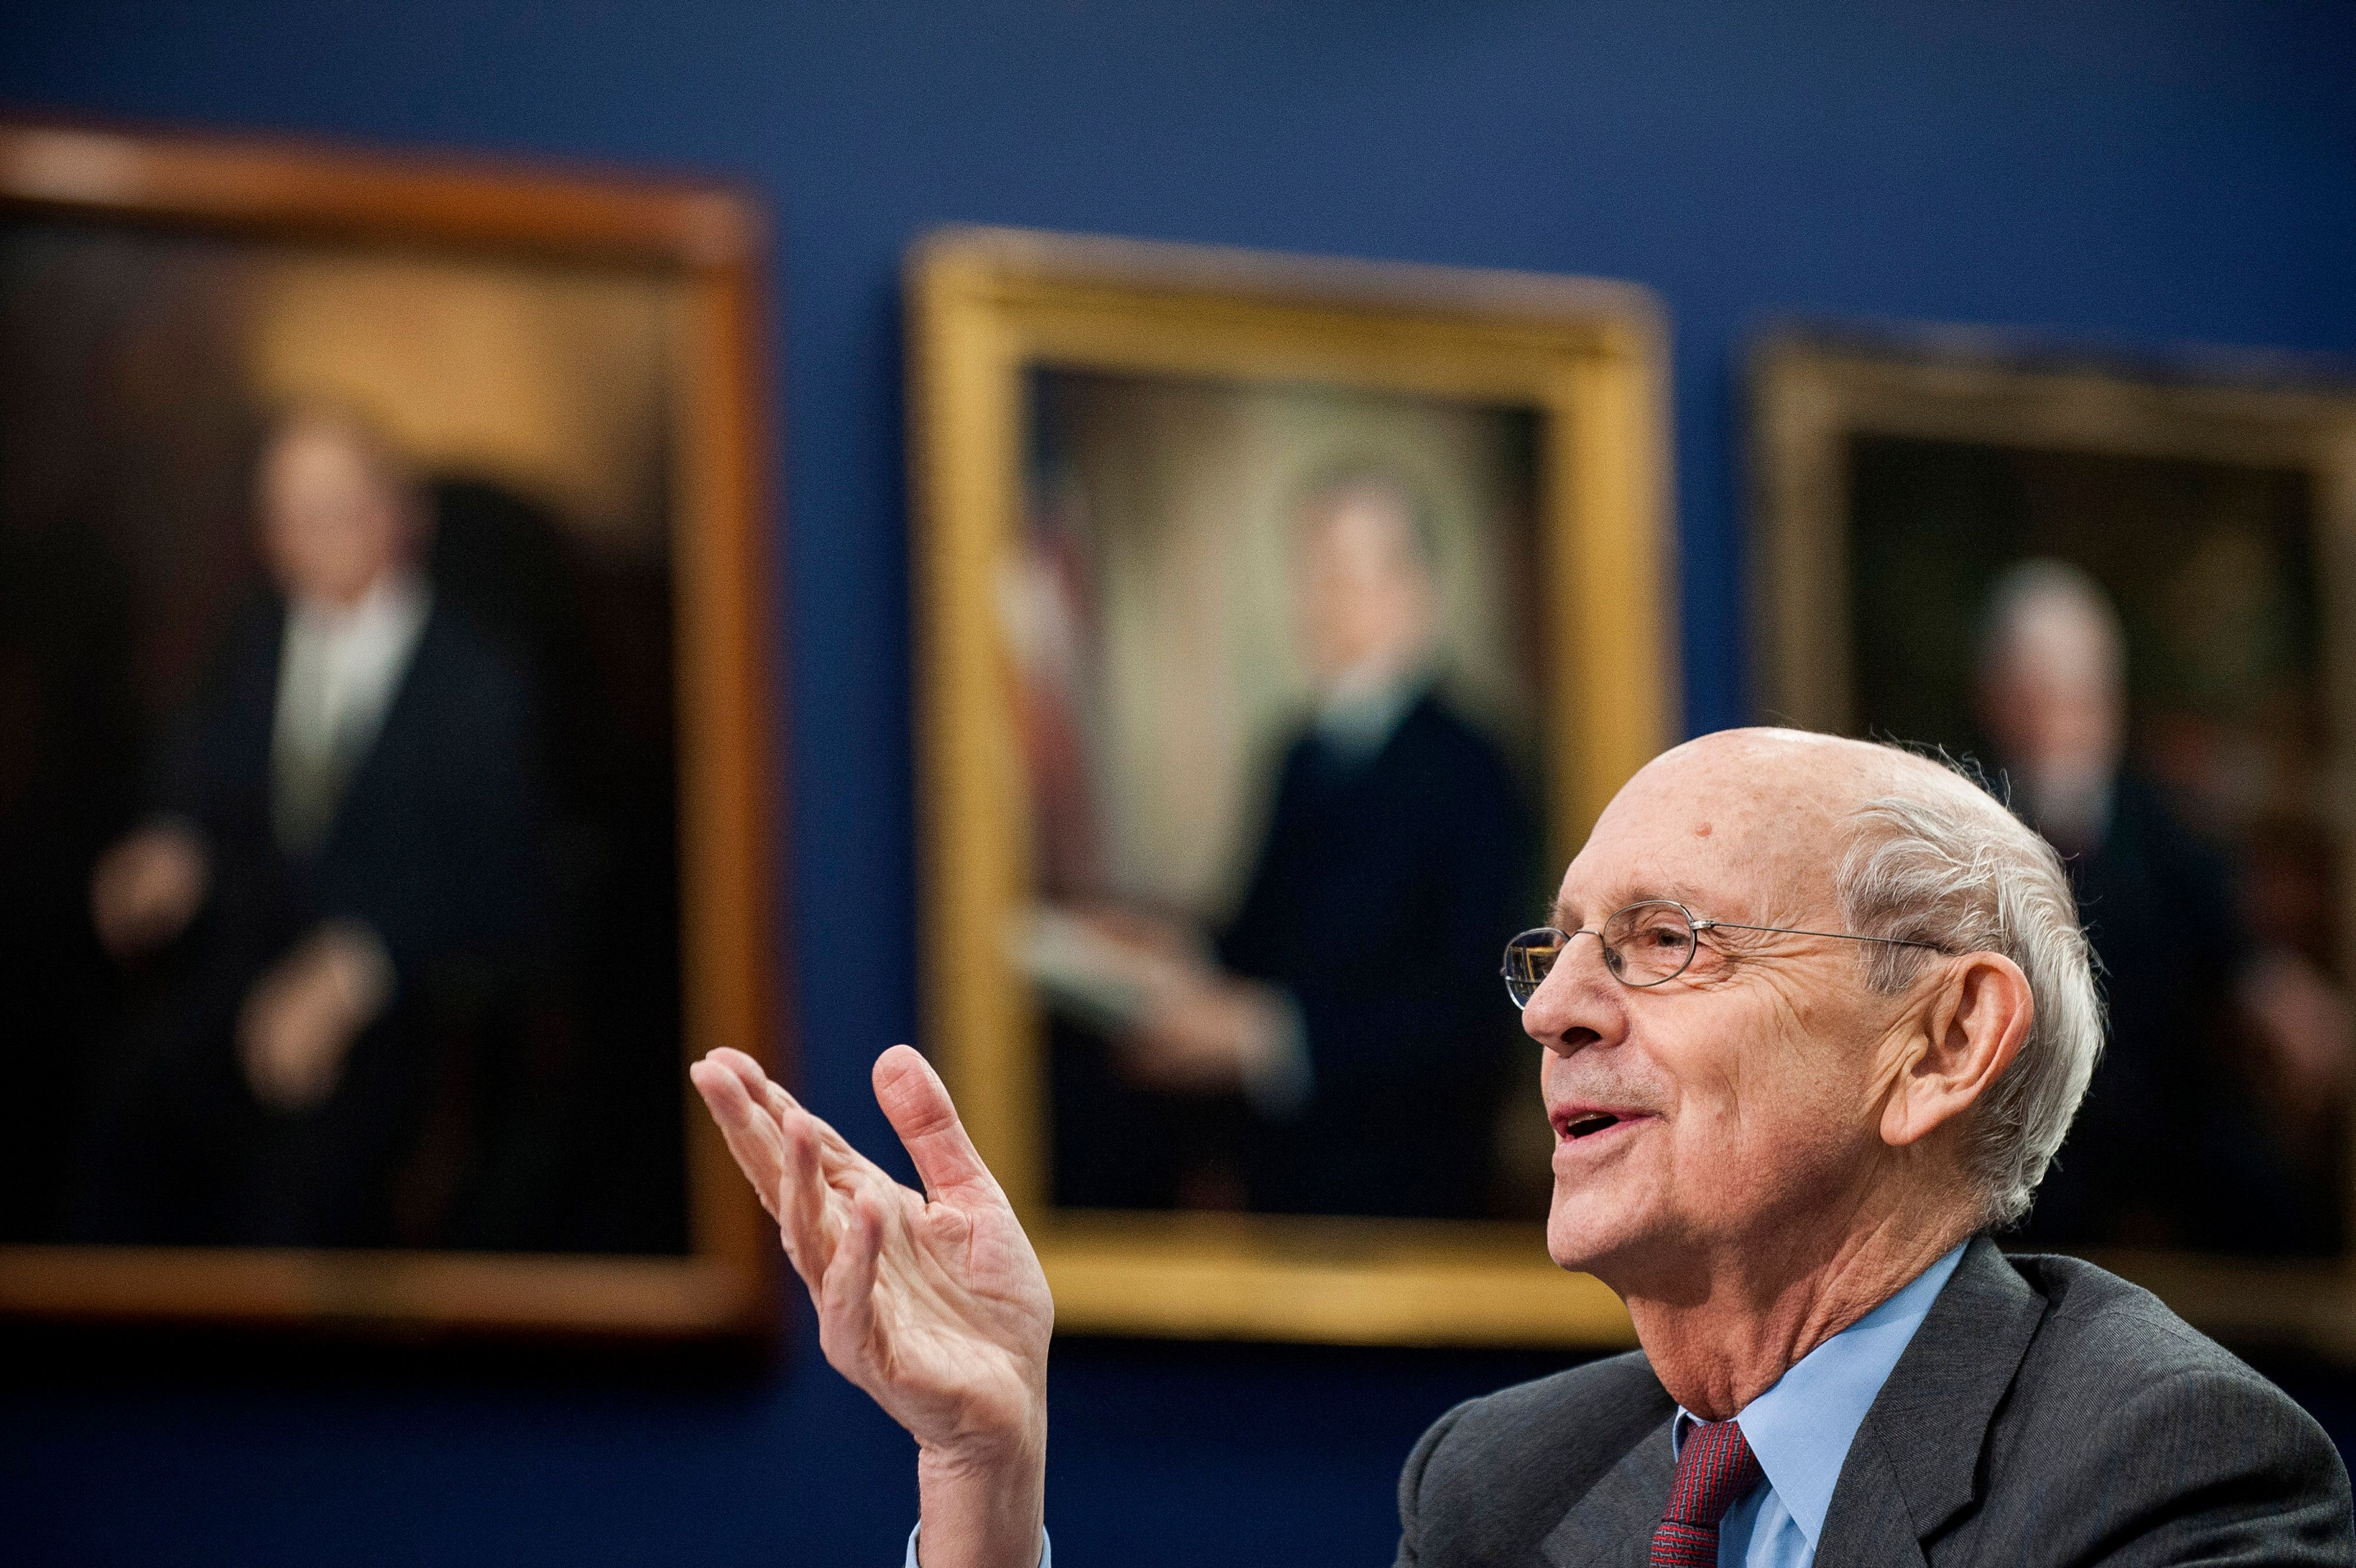 U.S. Supreme Court Justice Stephen Breyer testifies during a Financial Services and General Government Subcommittee in Washington, D.C., U.S., on Monday, March 23, 2015. Sprinting toward their spring recess, the House and Senate will separately consider budget blueprints, perhaps leading to the first joint congressional budget in six years. Photographer: Pete Marovich/Bloomberg via Getty Images